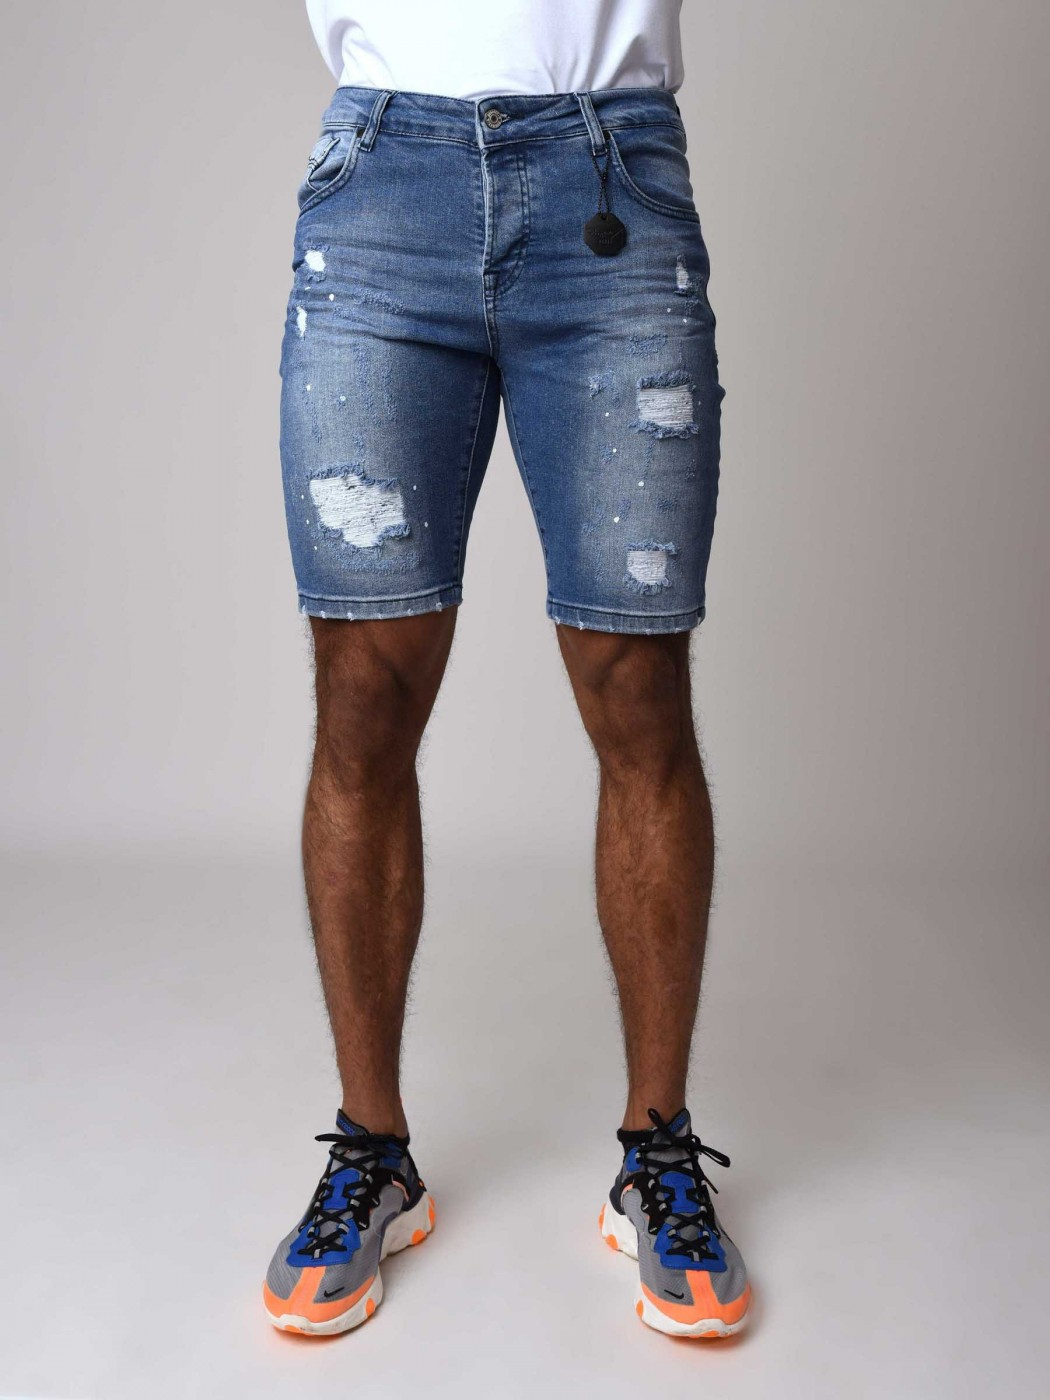 67c9bfedf2086 Men's Skinny Fit Denim Shorts with Ripped Detail Project X Paris